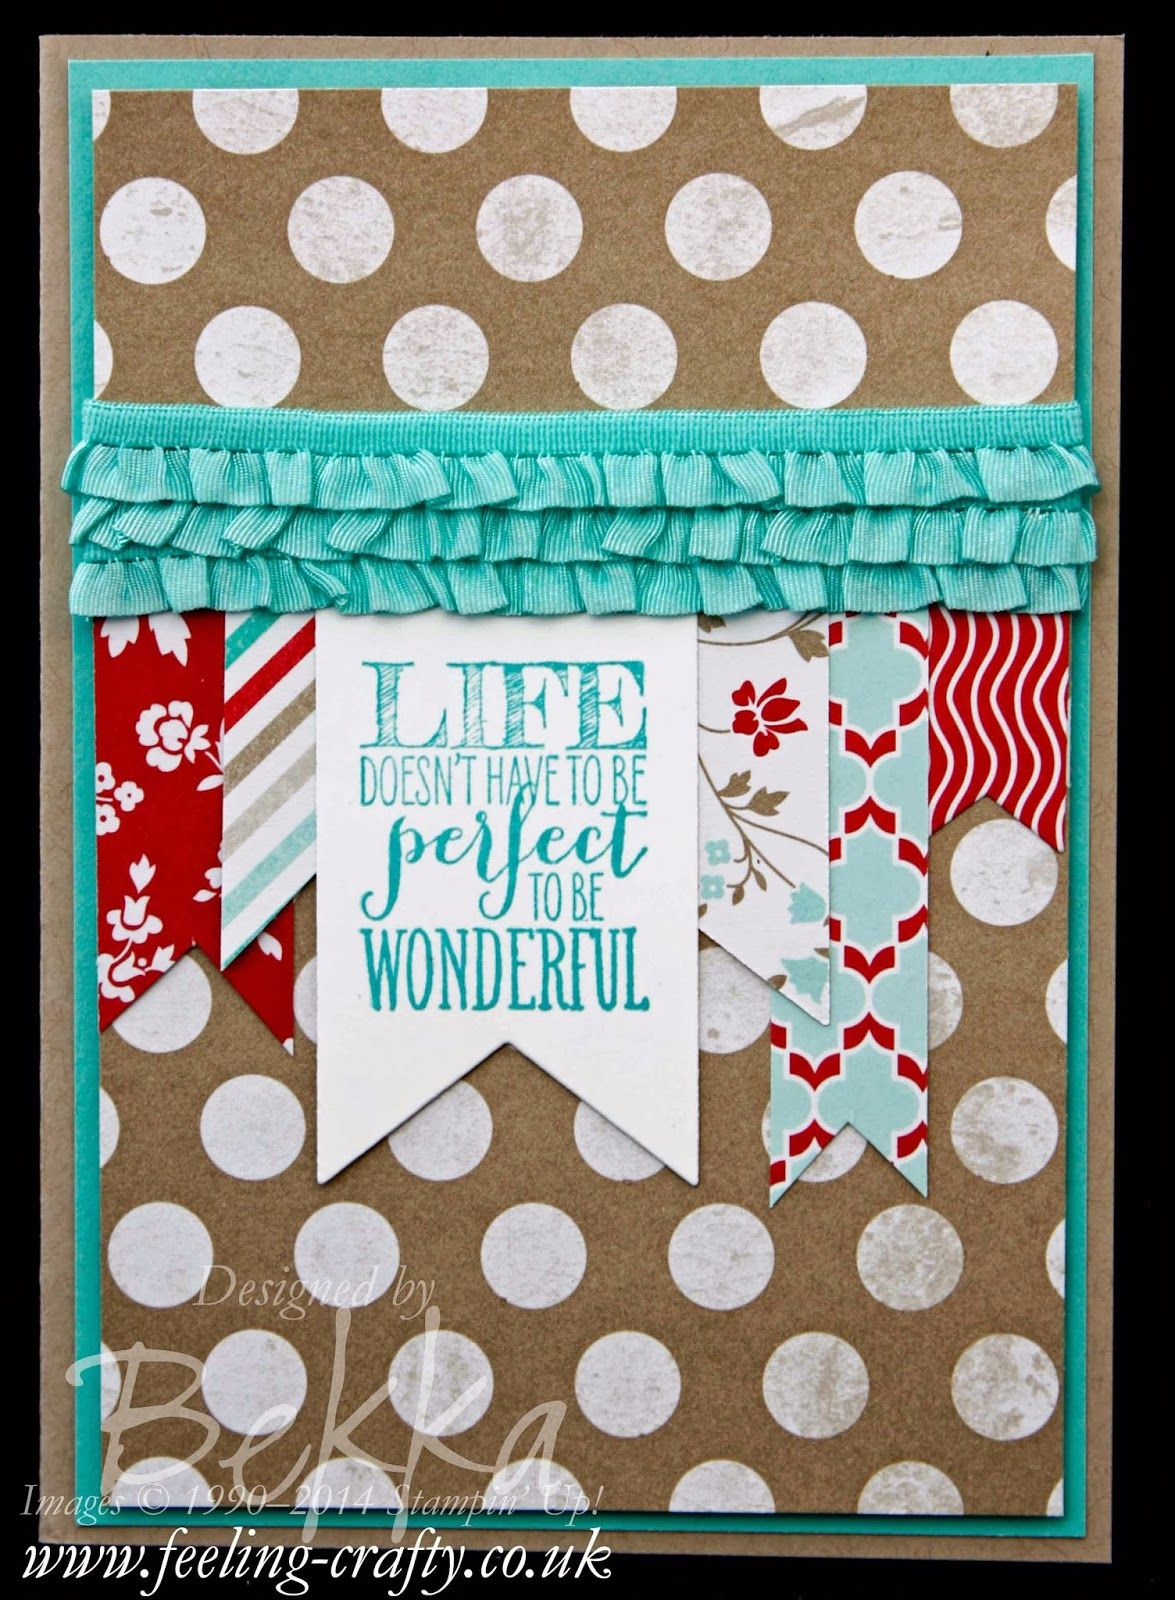 Life does not have to be perfect to be wonderful banner card by UK based Stampin' Up! Demonstrator Bekka Prideaux